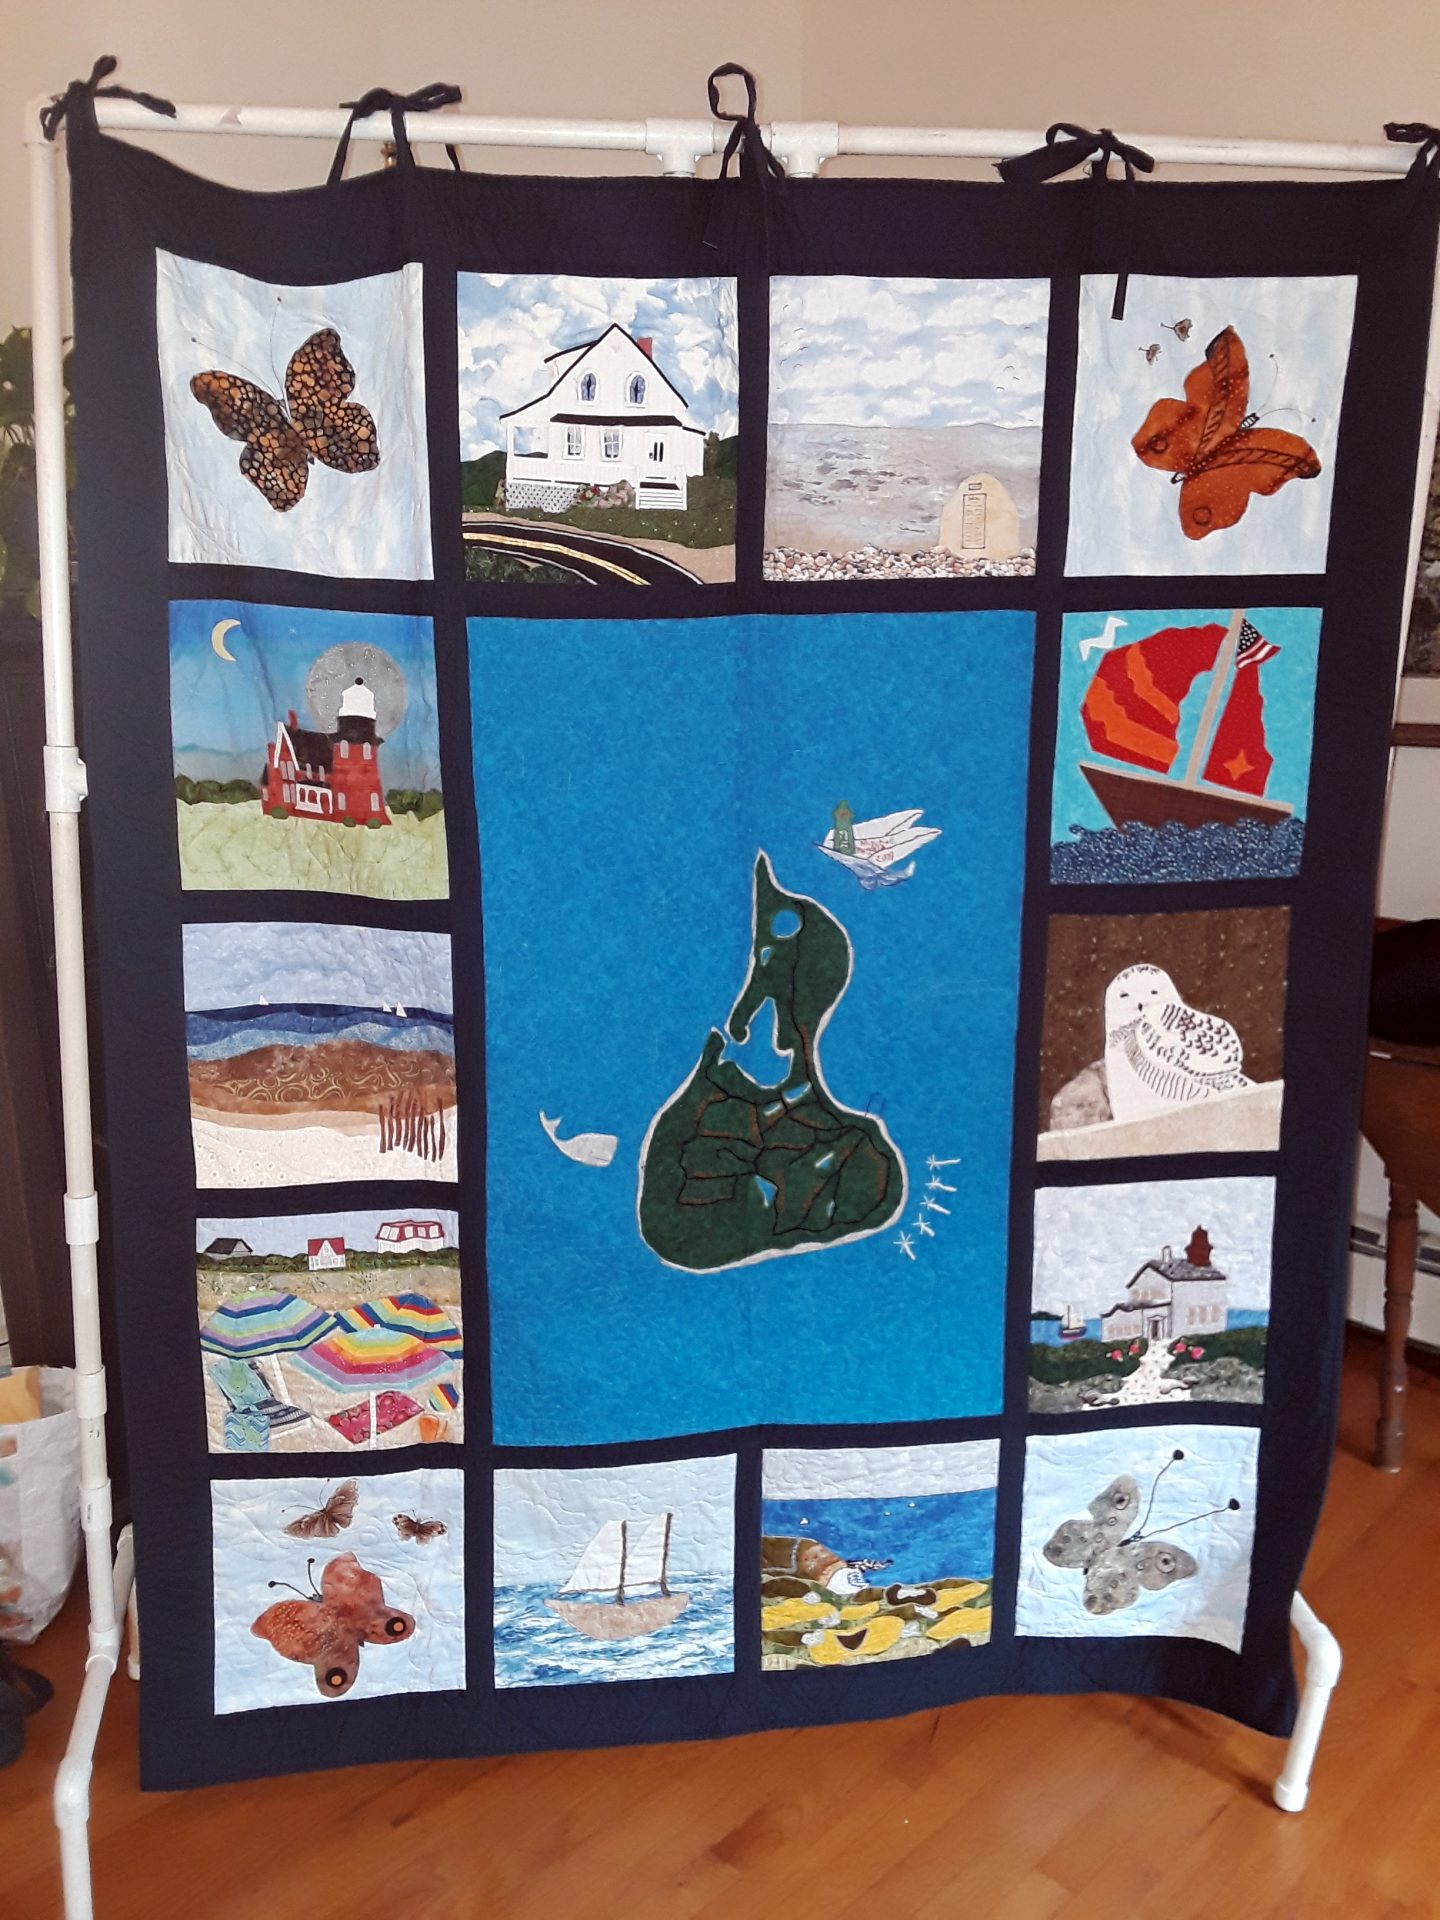 Close up of a bed-sized quilt featuring Block Island. Note the five windmills at lower right. Image courtesy of Judy Mitchell.